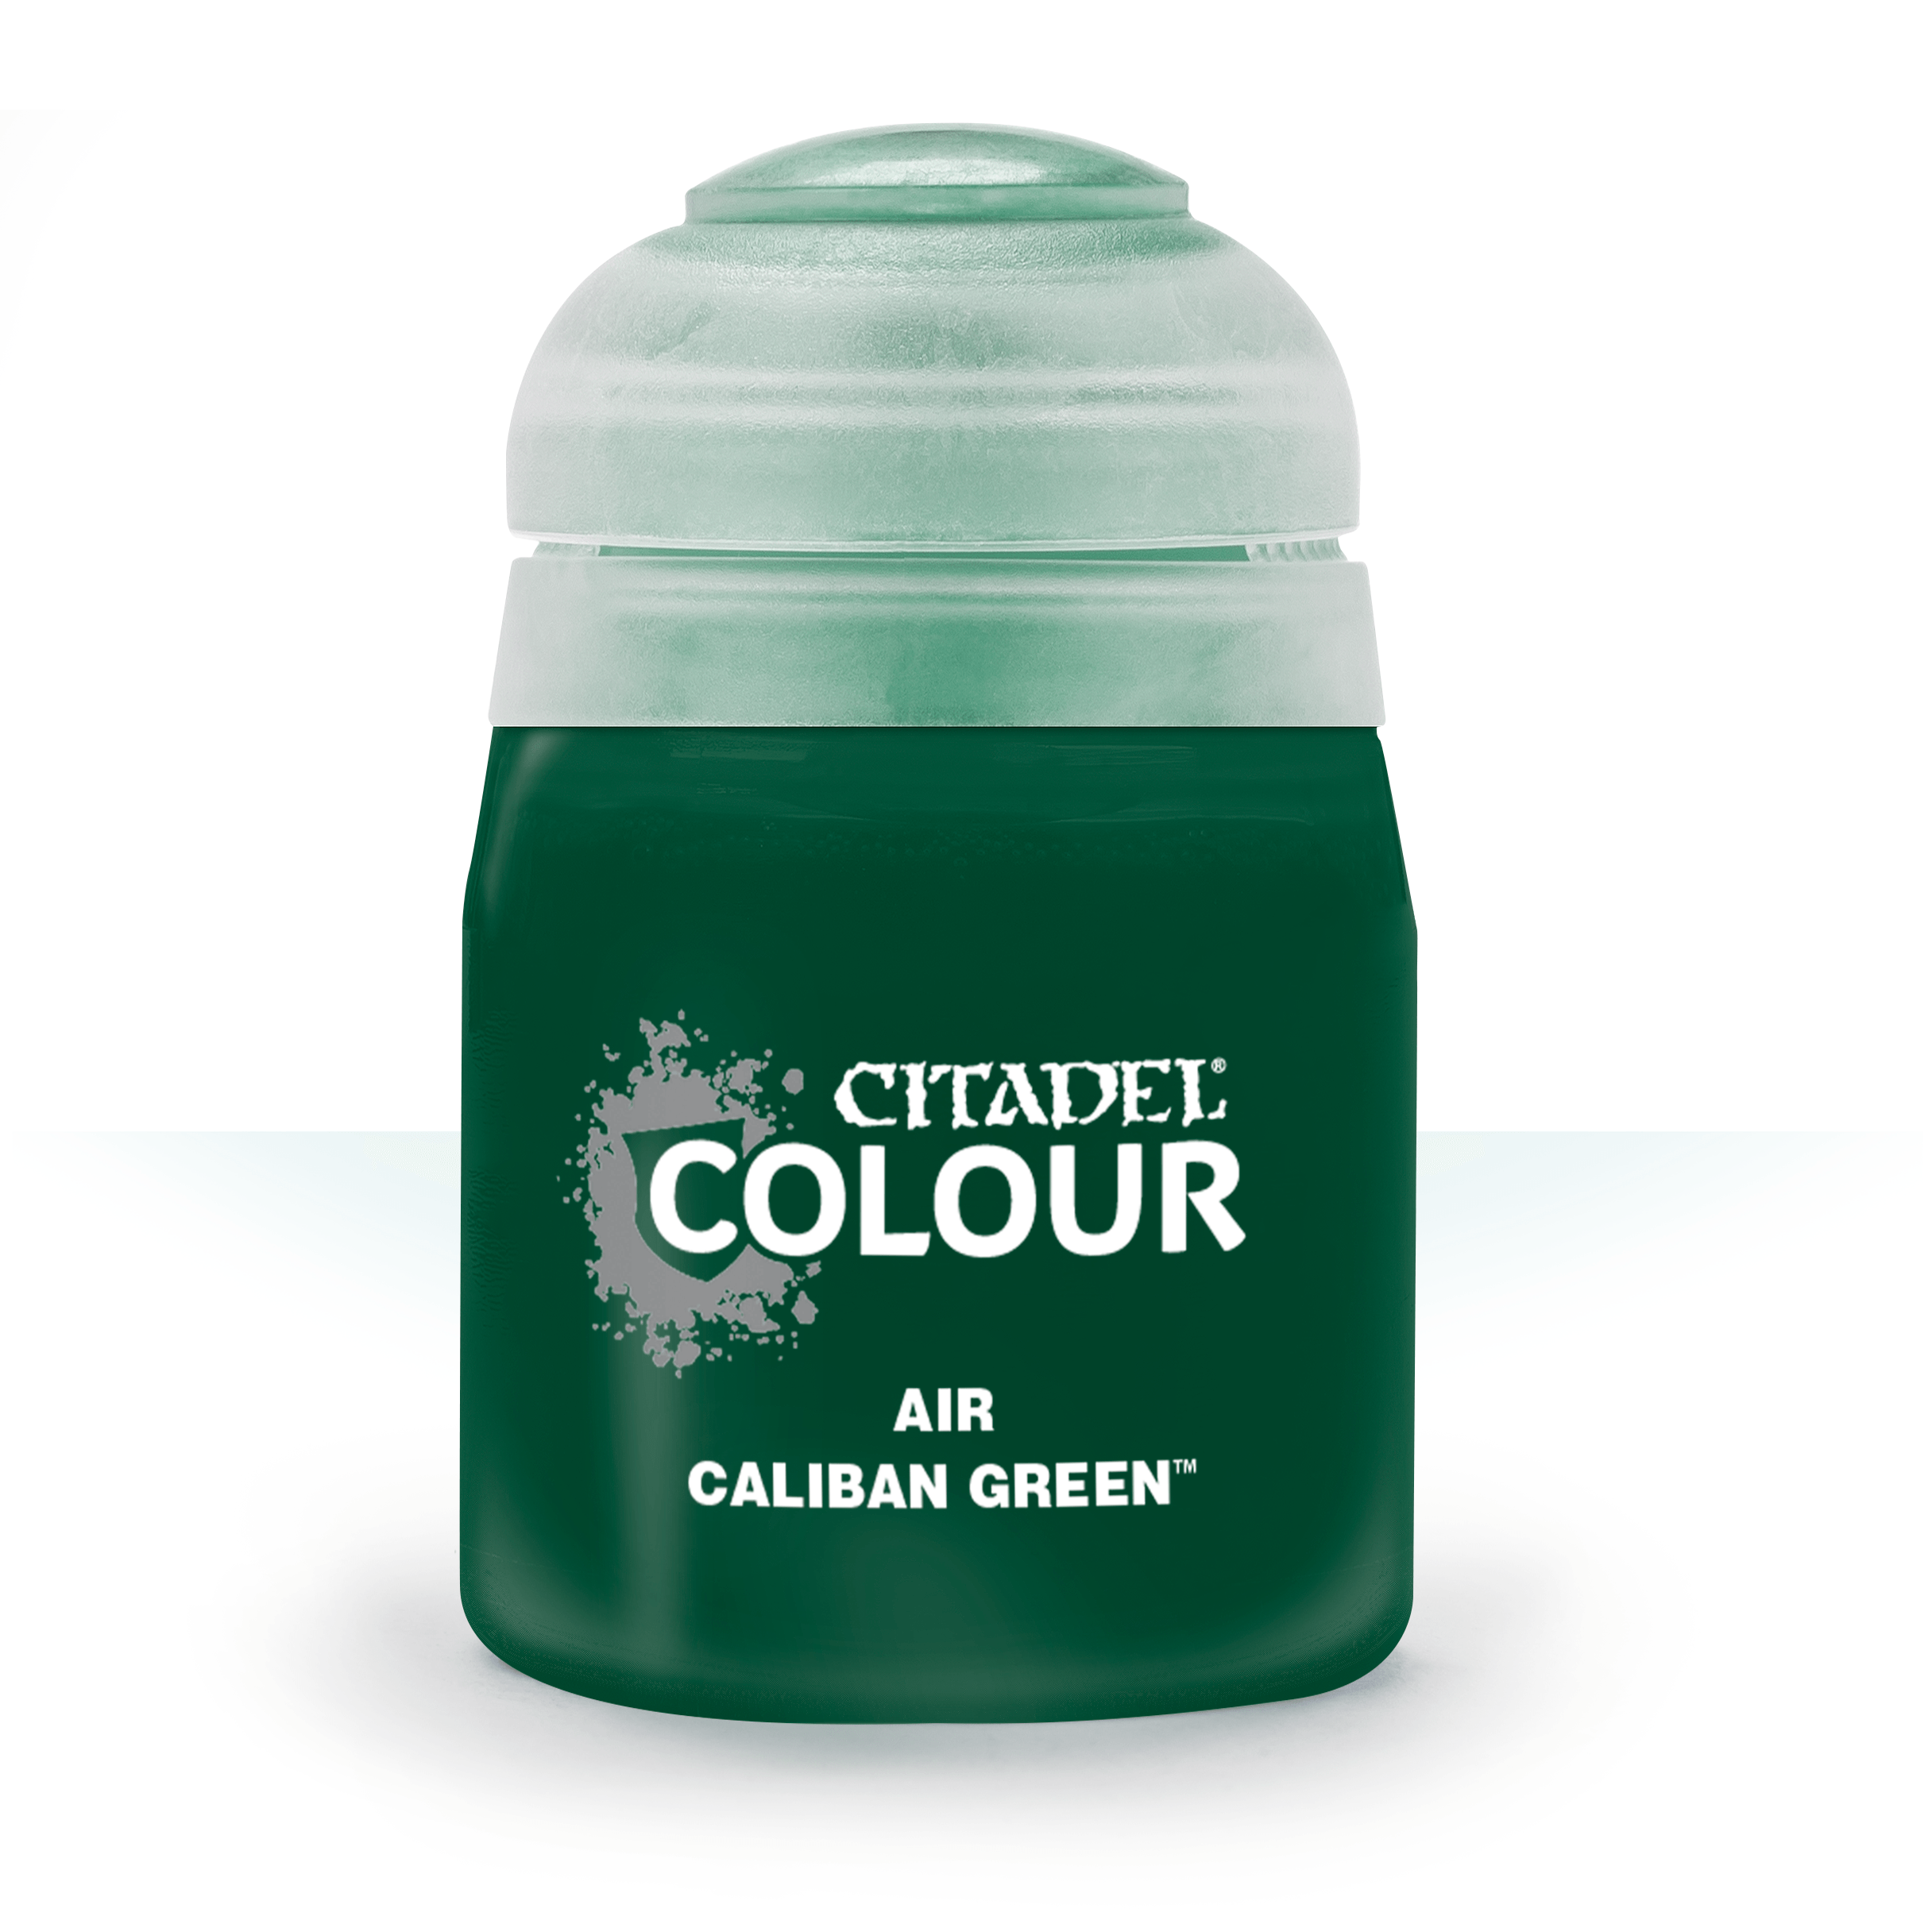 Citadel Airbrush Paints: Caliban Green Air (24ML)